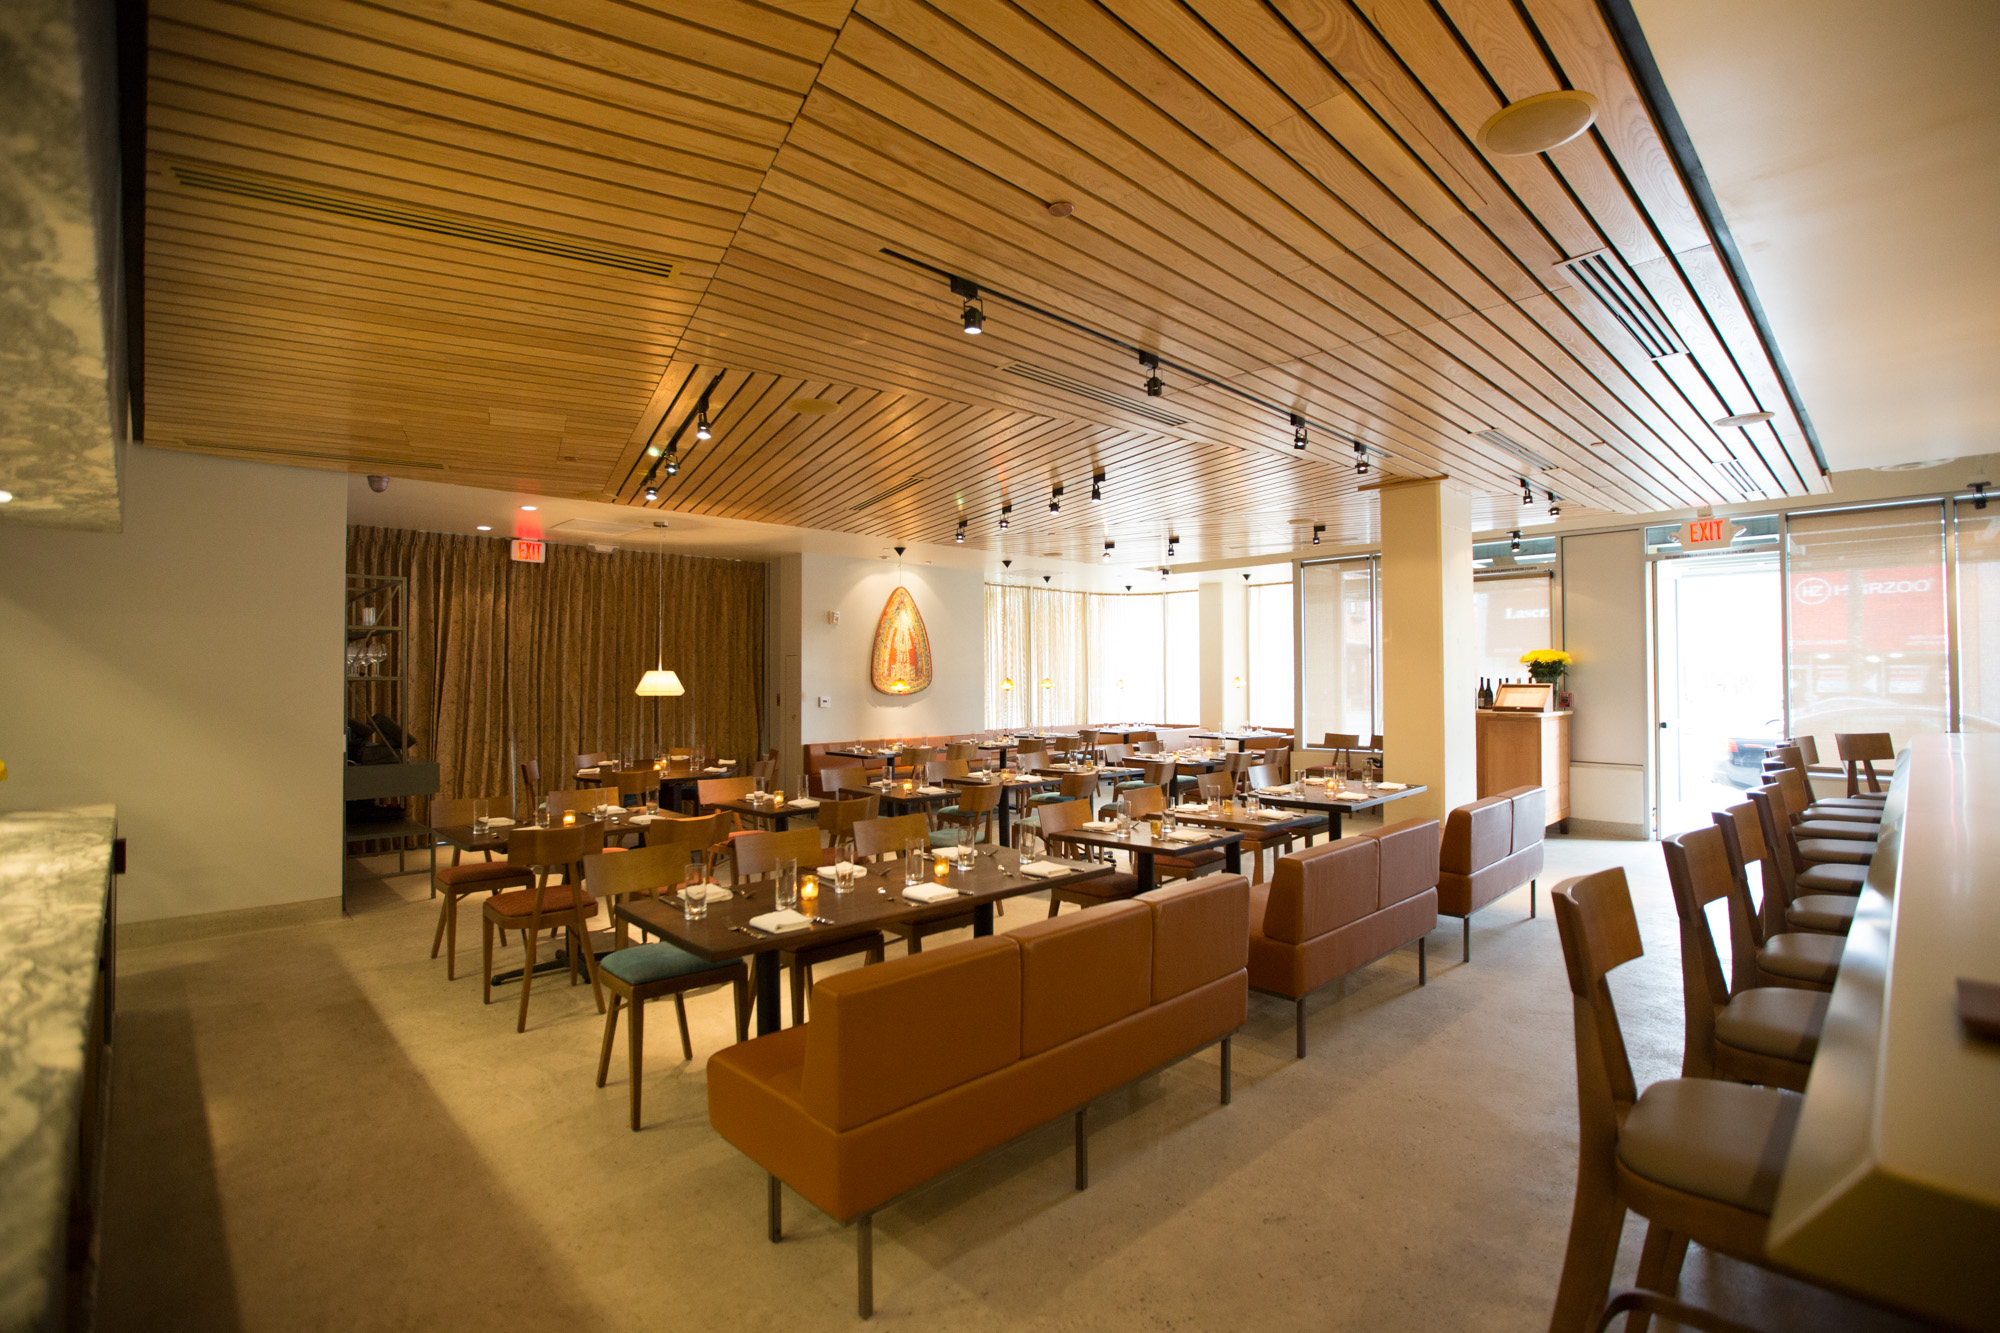 Aestus, A Suave Mid Century Modern Dining Room In The Heart Of Santa Monica